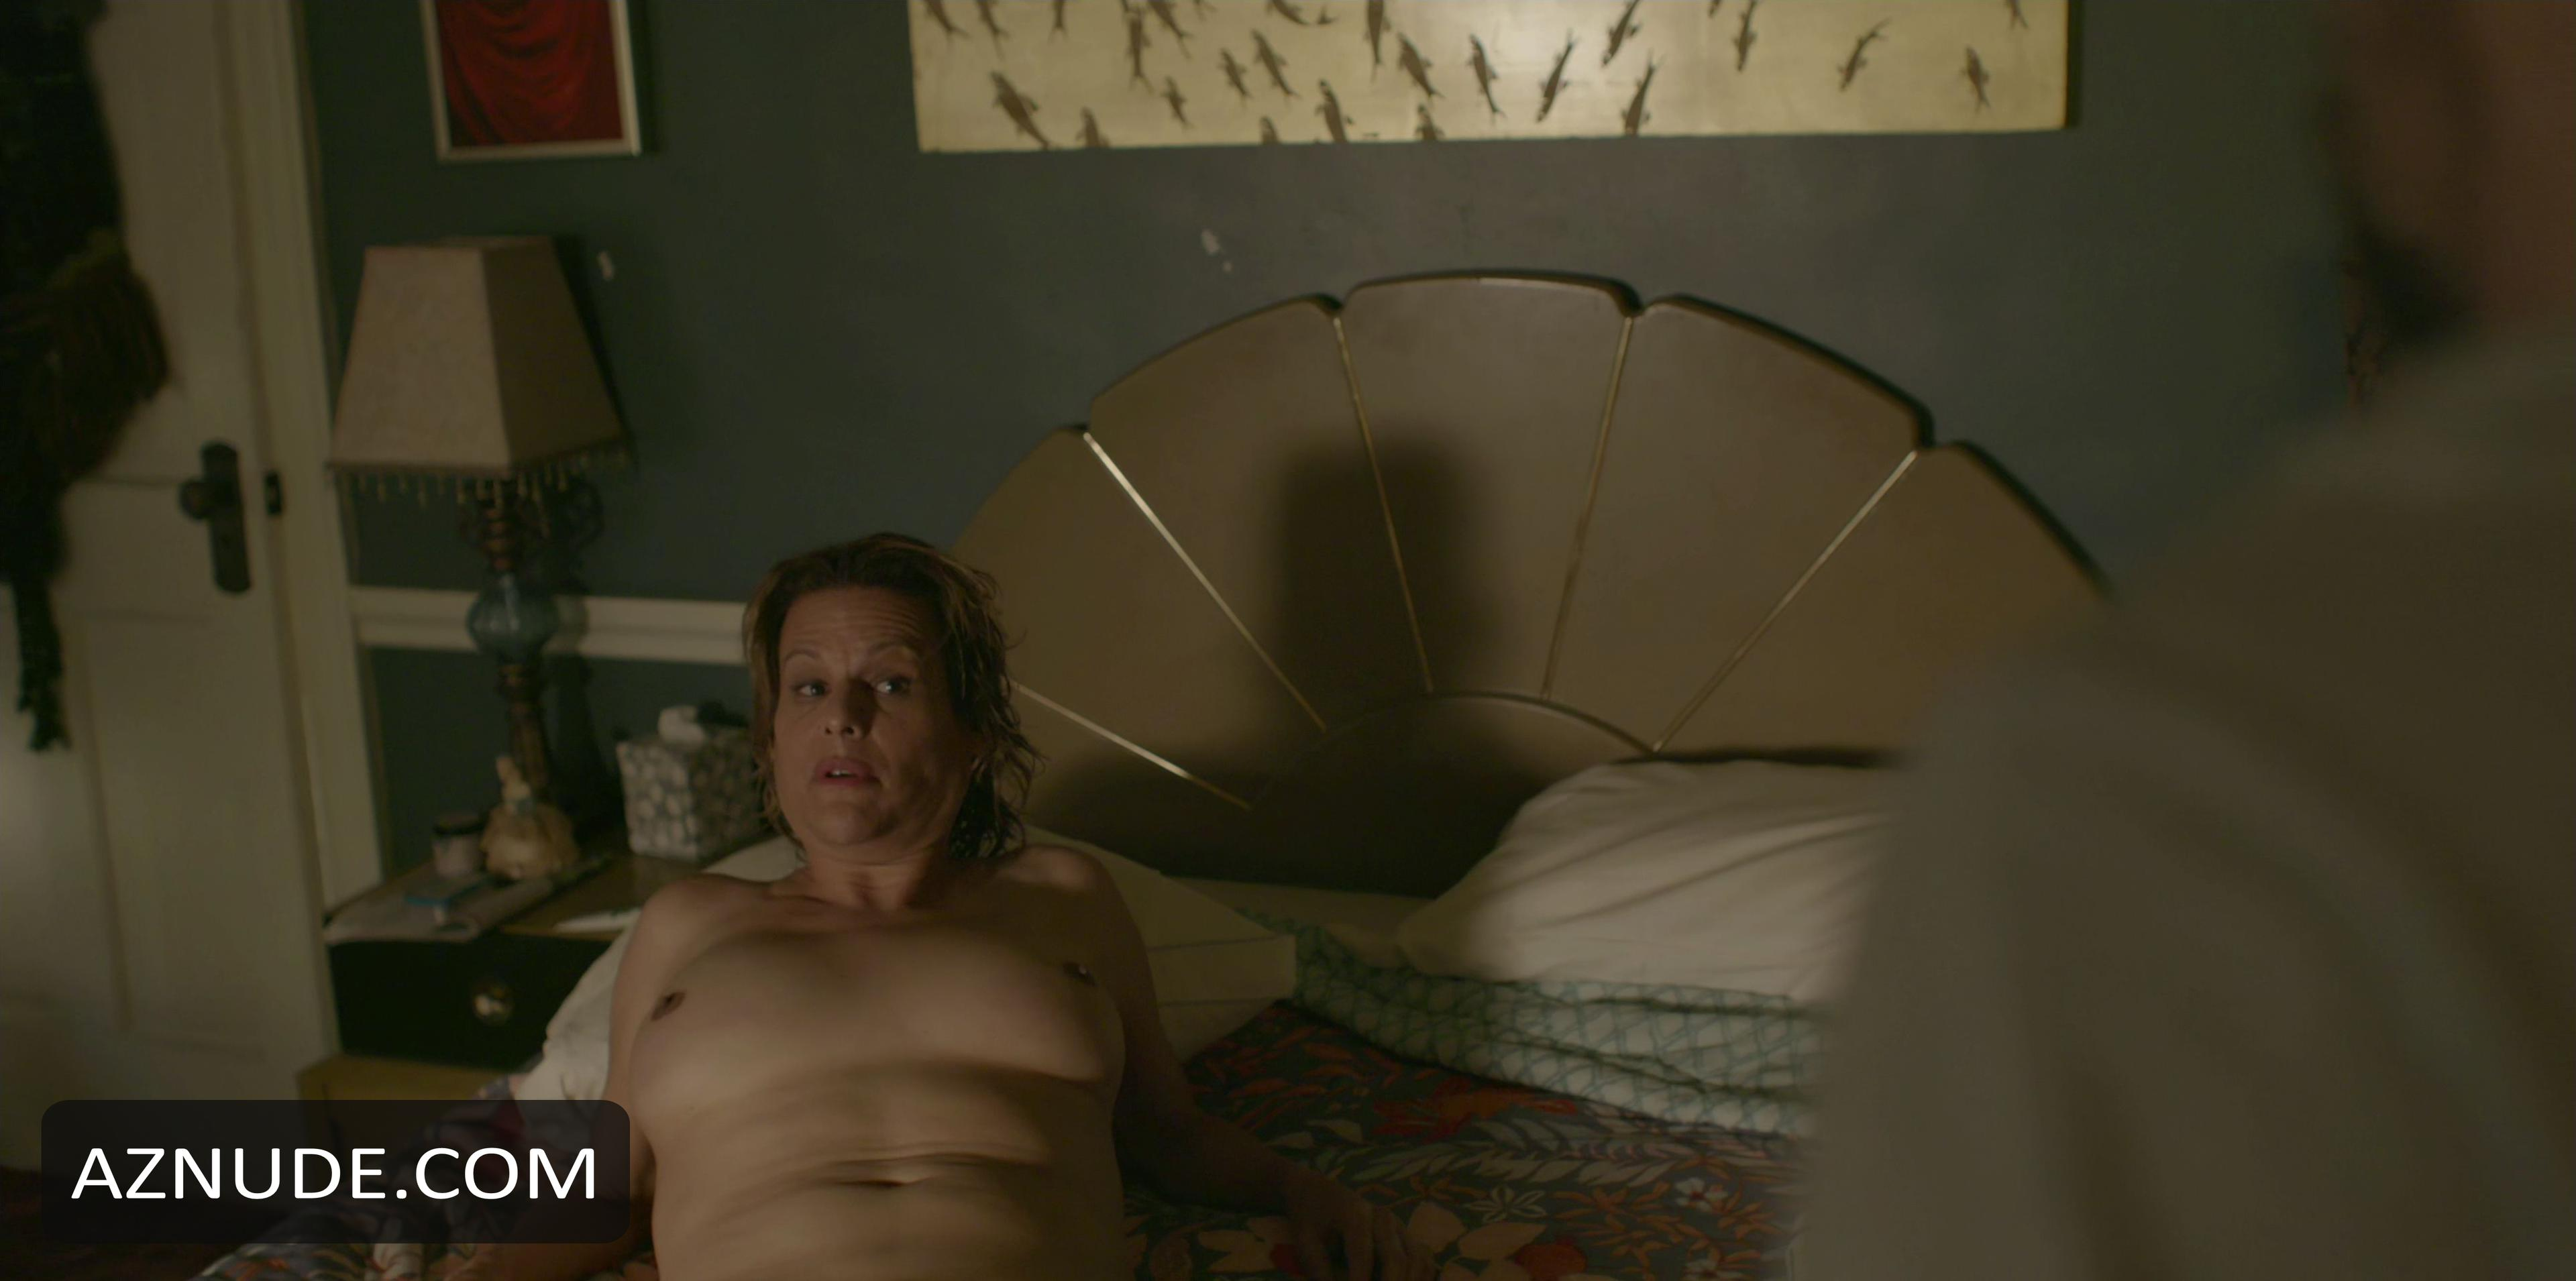 Alexandra daddario full frontal sex scene in true detective - 2 part 6